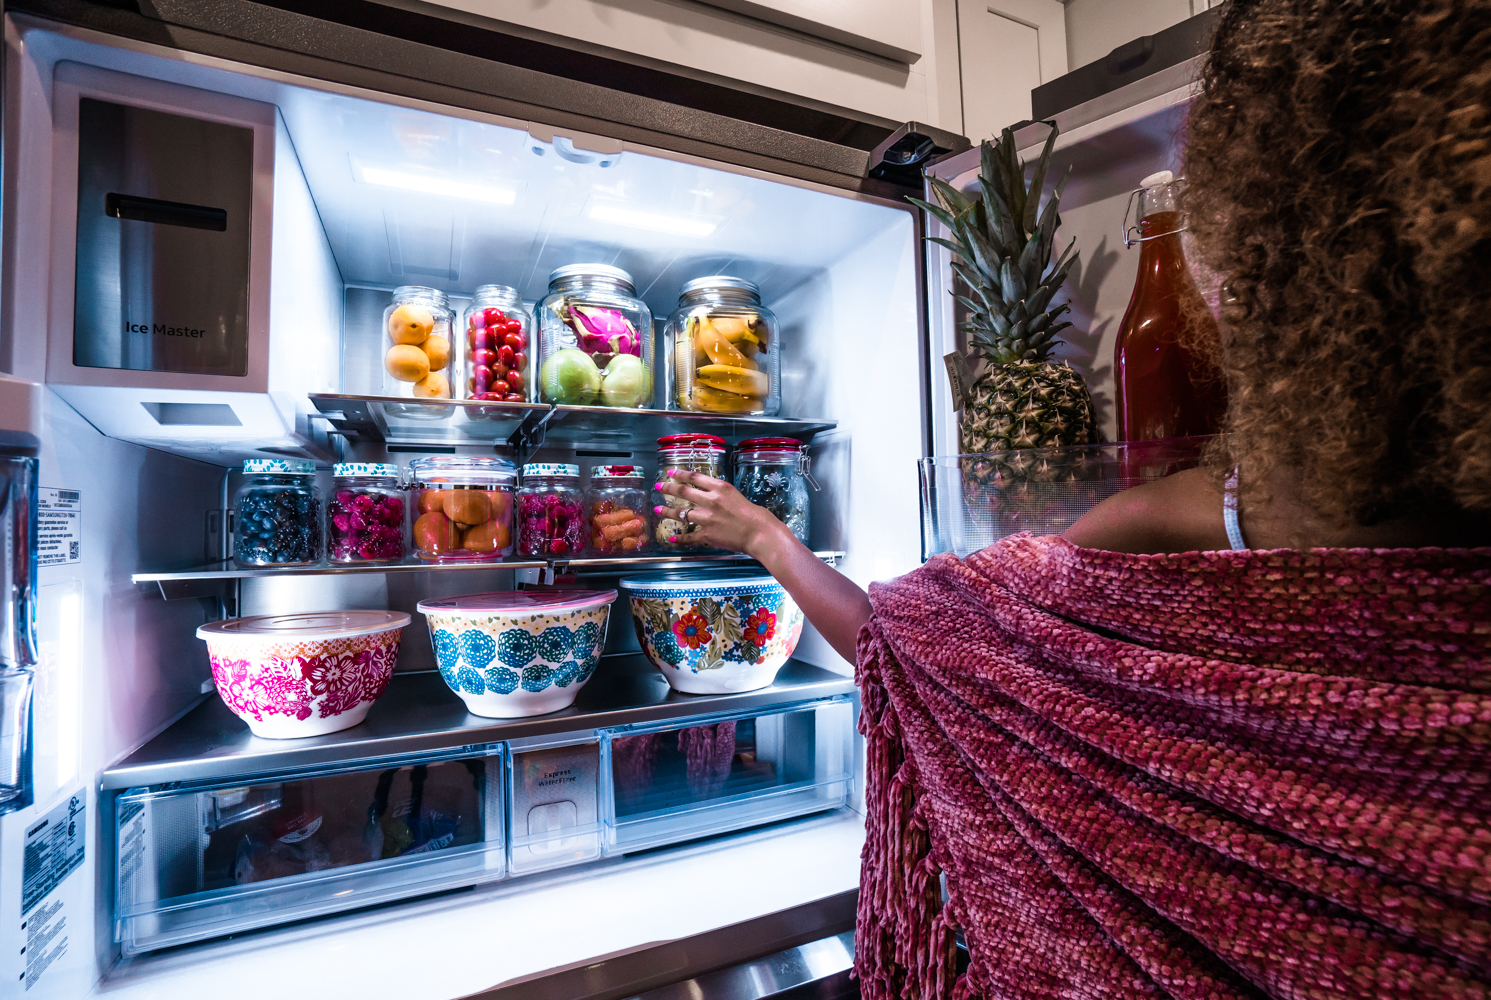 What's in My Smart Fridge? | Samsung Family Hub Review